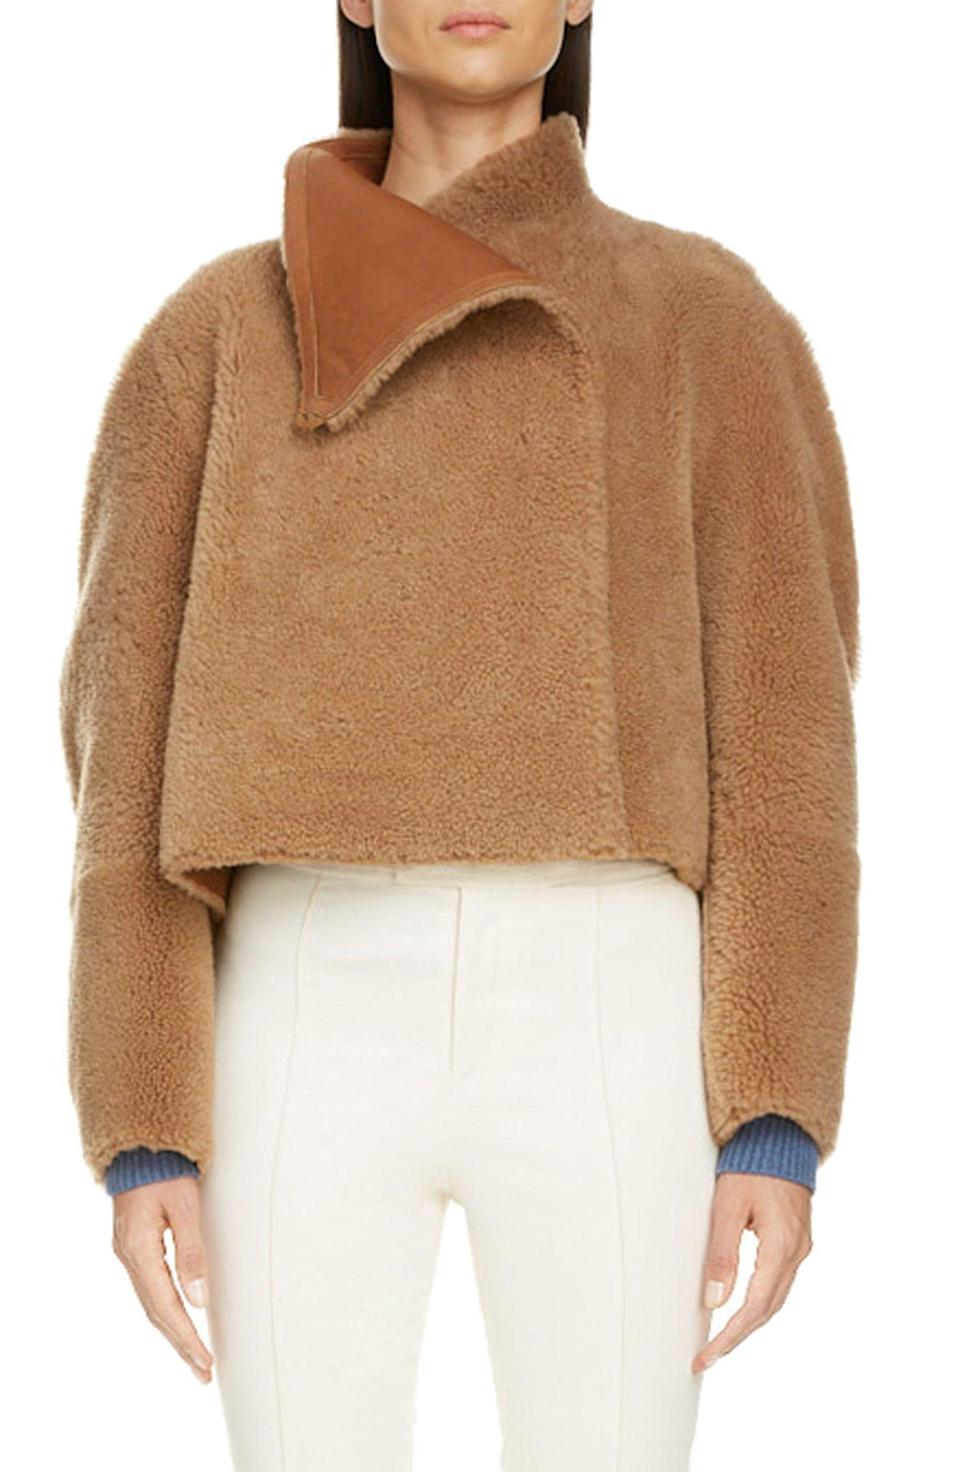 """<p><strong>Isabel Marant</strong></p><p>nordstrom.com</p><p><strong>$2795.00</strong></p><p><a href=""""https://go.redirectingat.com?id=74968X1596630&url=https%3A%2F%2Fwww.nordstrom.com%2Fs%2Fisabel-marant-reversible-genuine-shearling-crop-coat%2F5616478&sref=https%3A%2F%2Fwww.harpersbazaar.com%2Ffashion%2Ftrends%2Fg34113004%2Fbest-teddy-bear-coats%2F"""" rel=""""nofollow noopener"""" target=""""_blank"""" data-ylk=""""slk:Shop Now"""" class=""""link rapid-noclick-resp"""">Shop Now</a></p><p>While the traditional teddy coat isn't cropped, this Isabel Marant gem is a nice alternative to shake things up. </p>"""